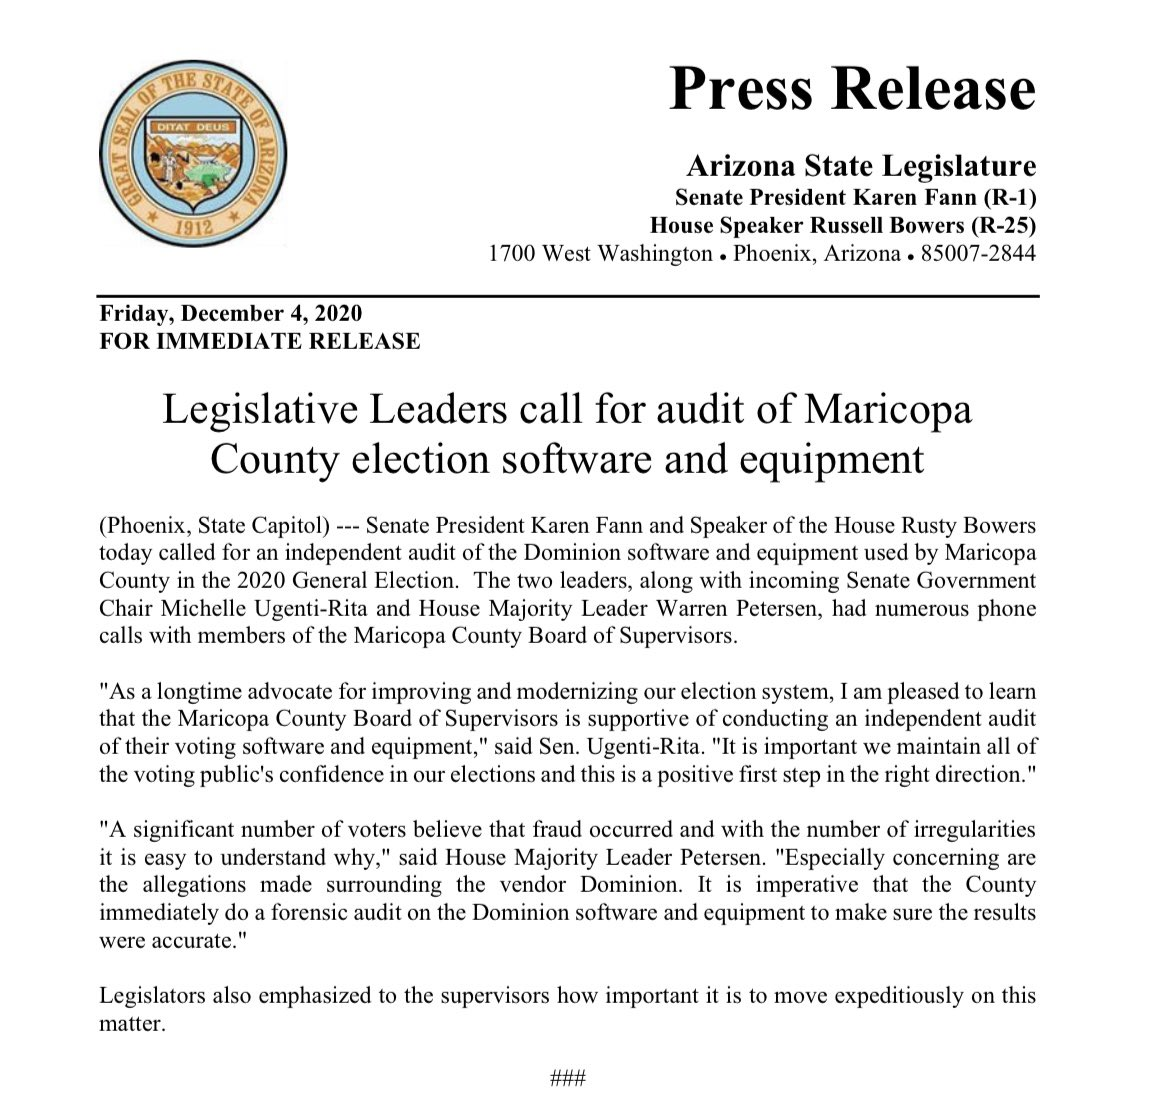 FOR IMMEDIATE RELEASE: Legislative Leaders call for audit of Maricopa County election software and equipment   #AZSenate #AZleg #Election @AZHouseGOP